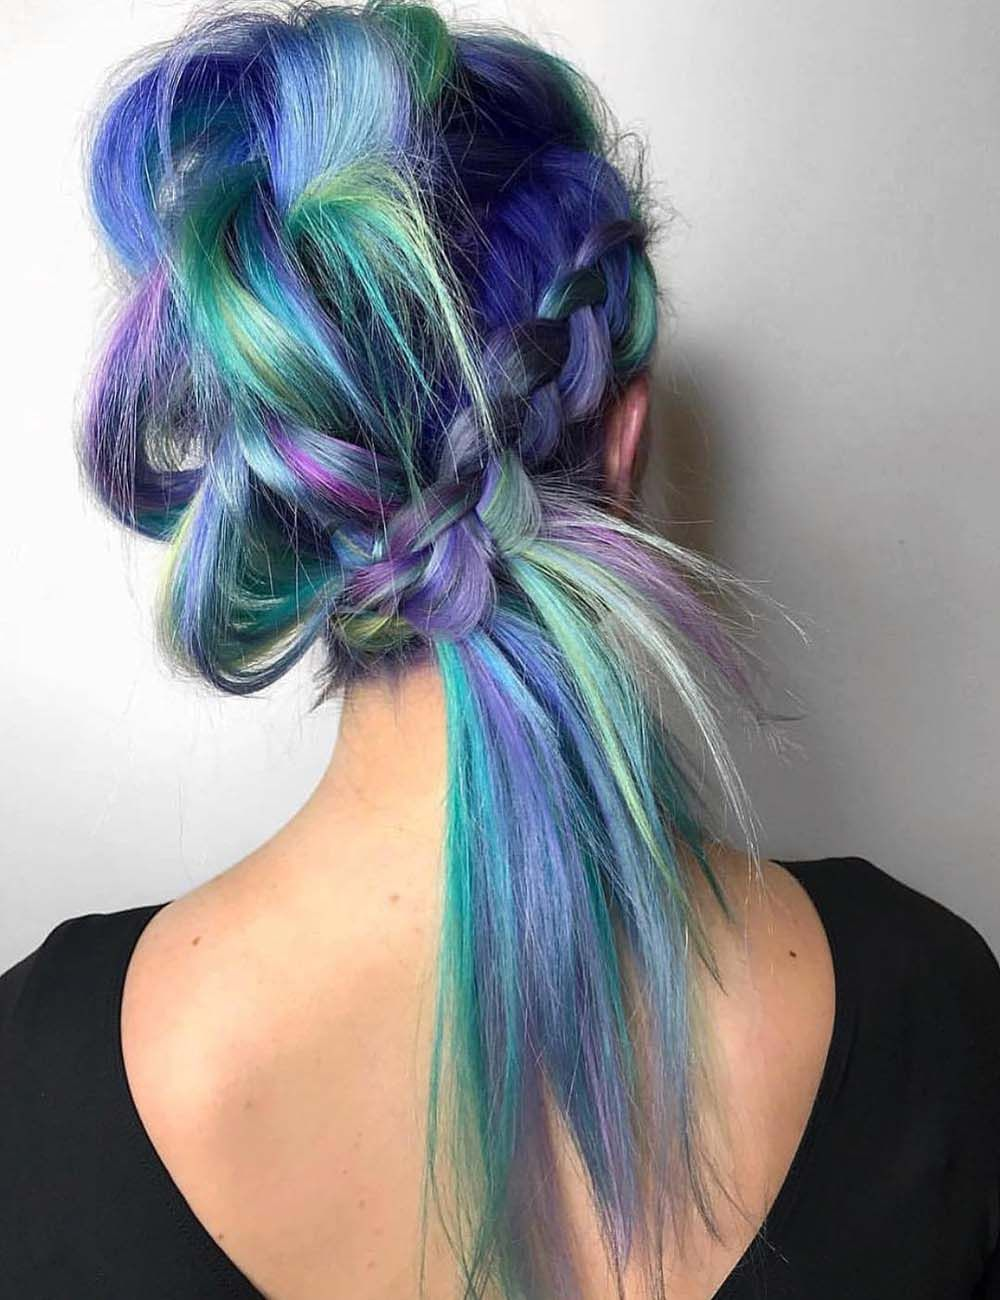 Amazing Watercolor Hairs With Side Braids Hair Styles Fox Hair